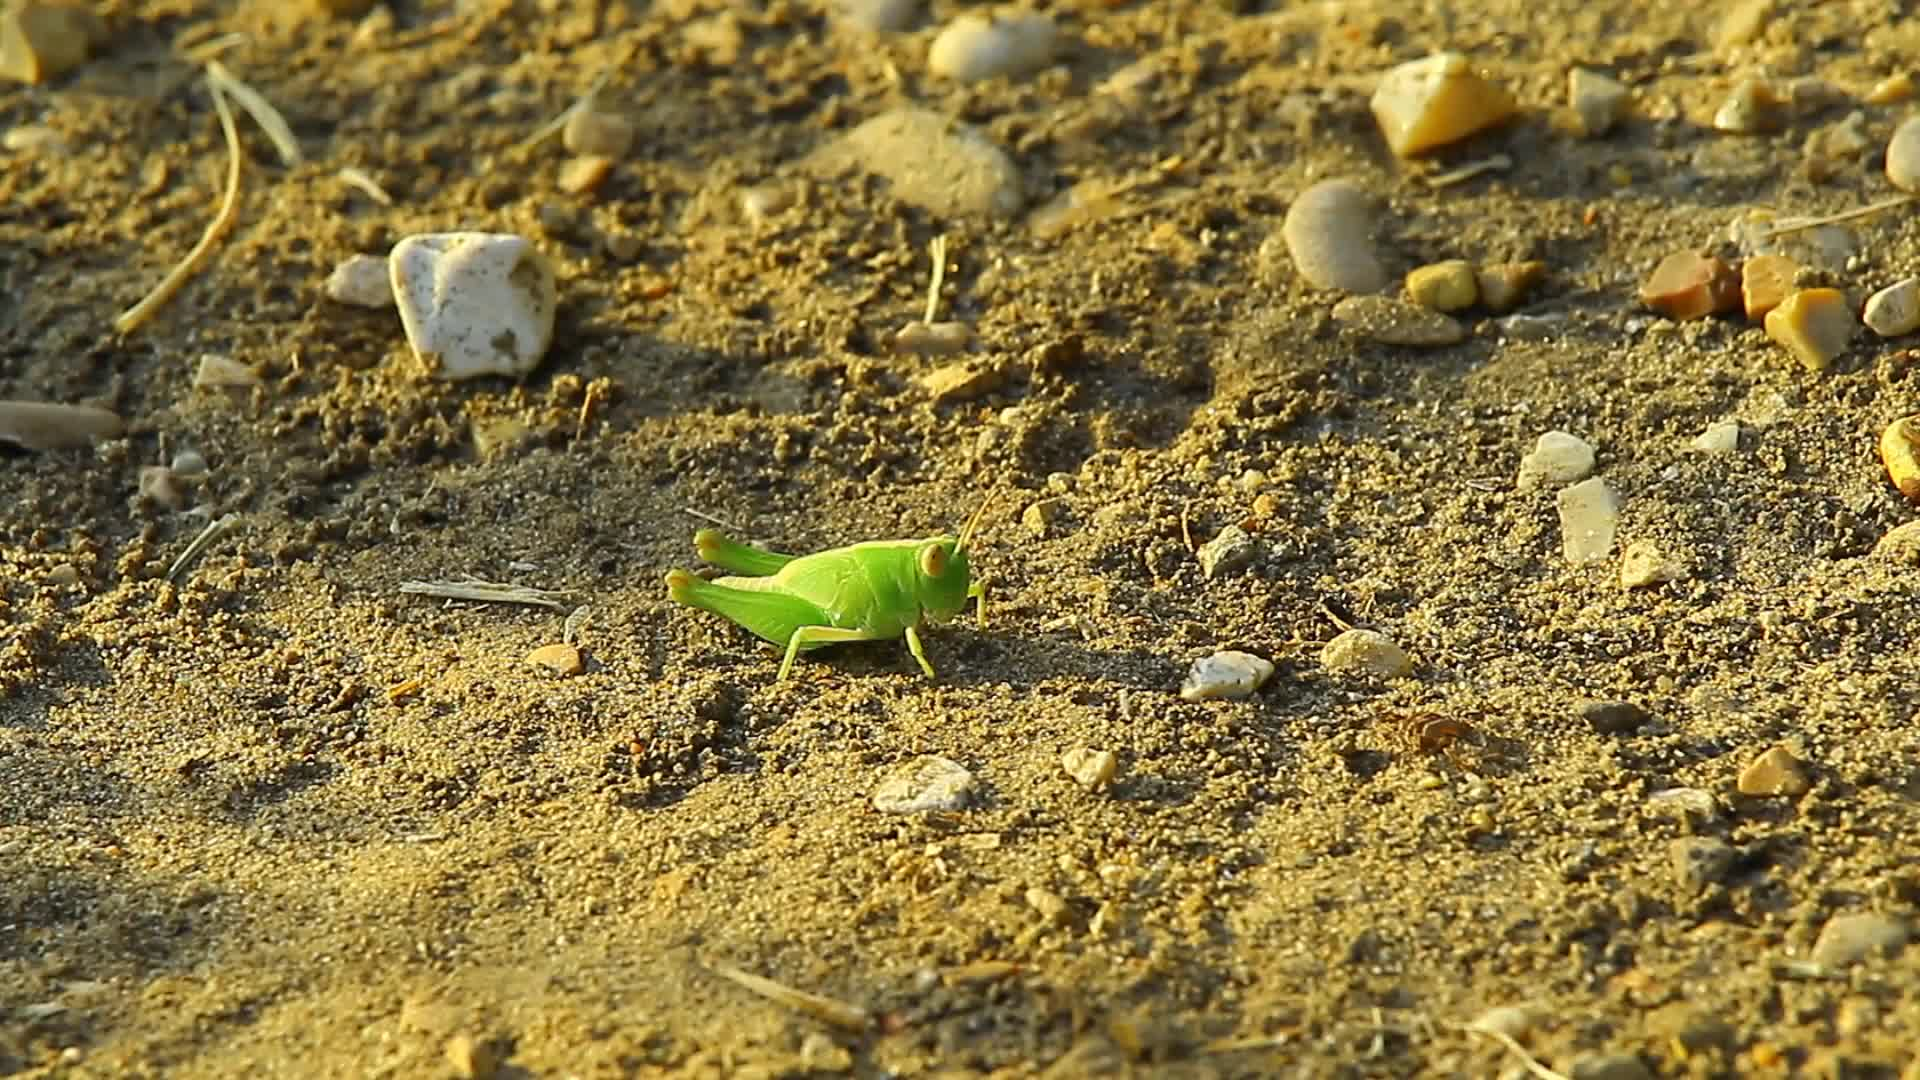 Grasshopper on ground